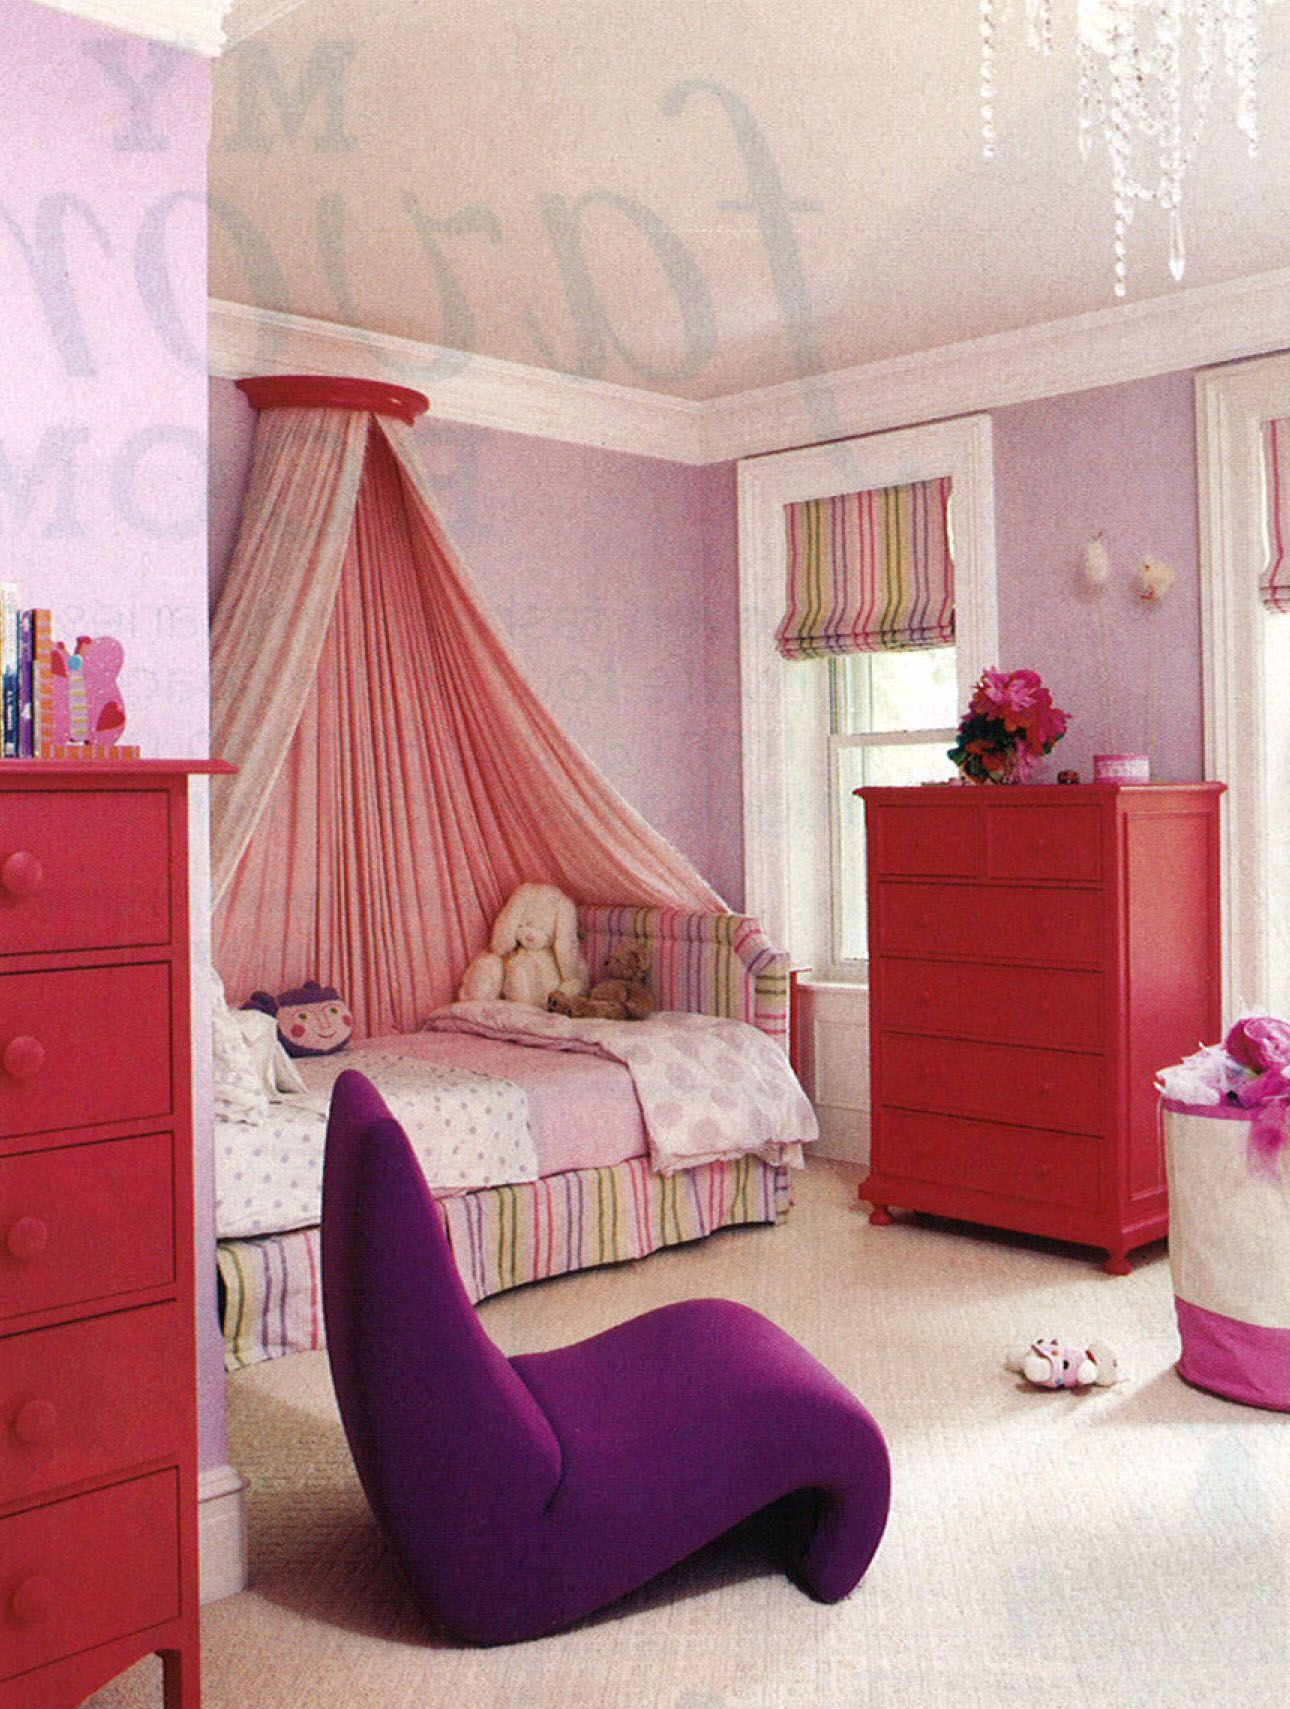 Bedrooms designs for teenagers - Bedrooms Designs For Teenagers 40